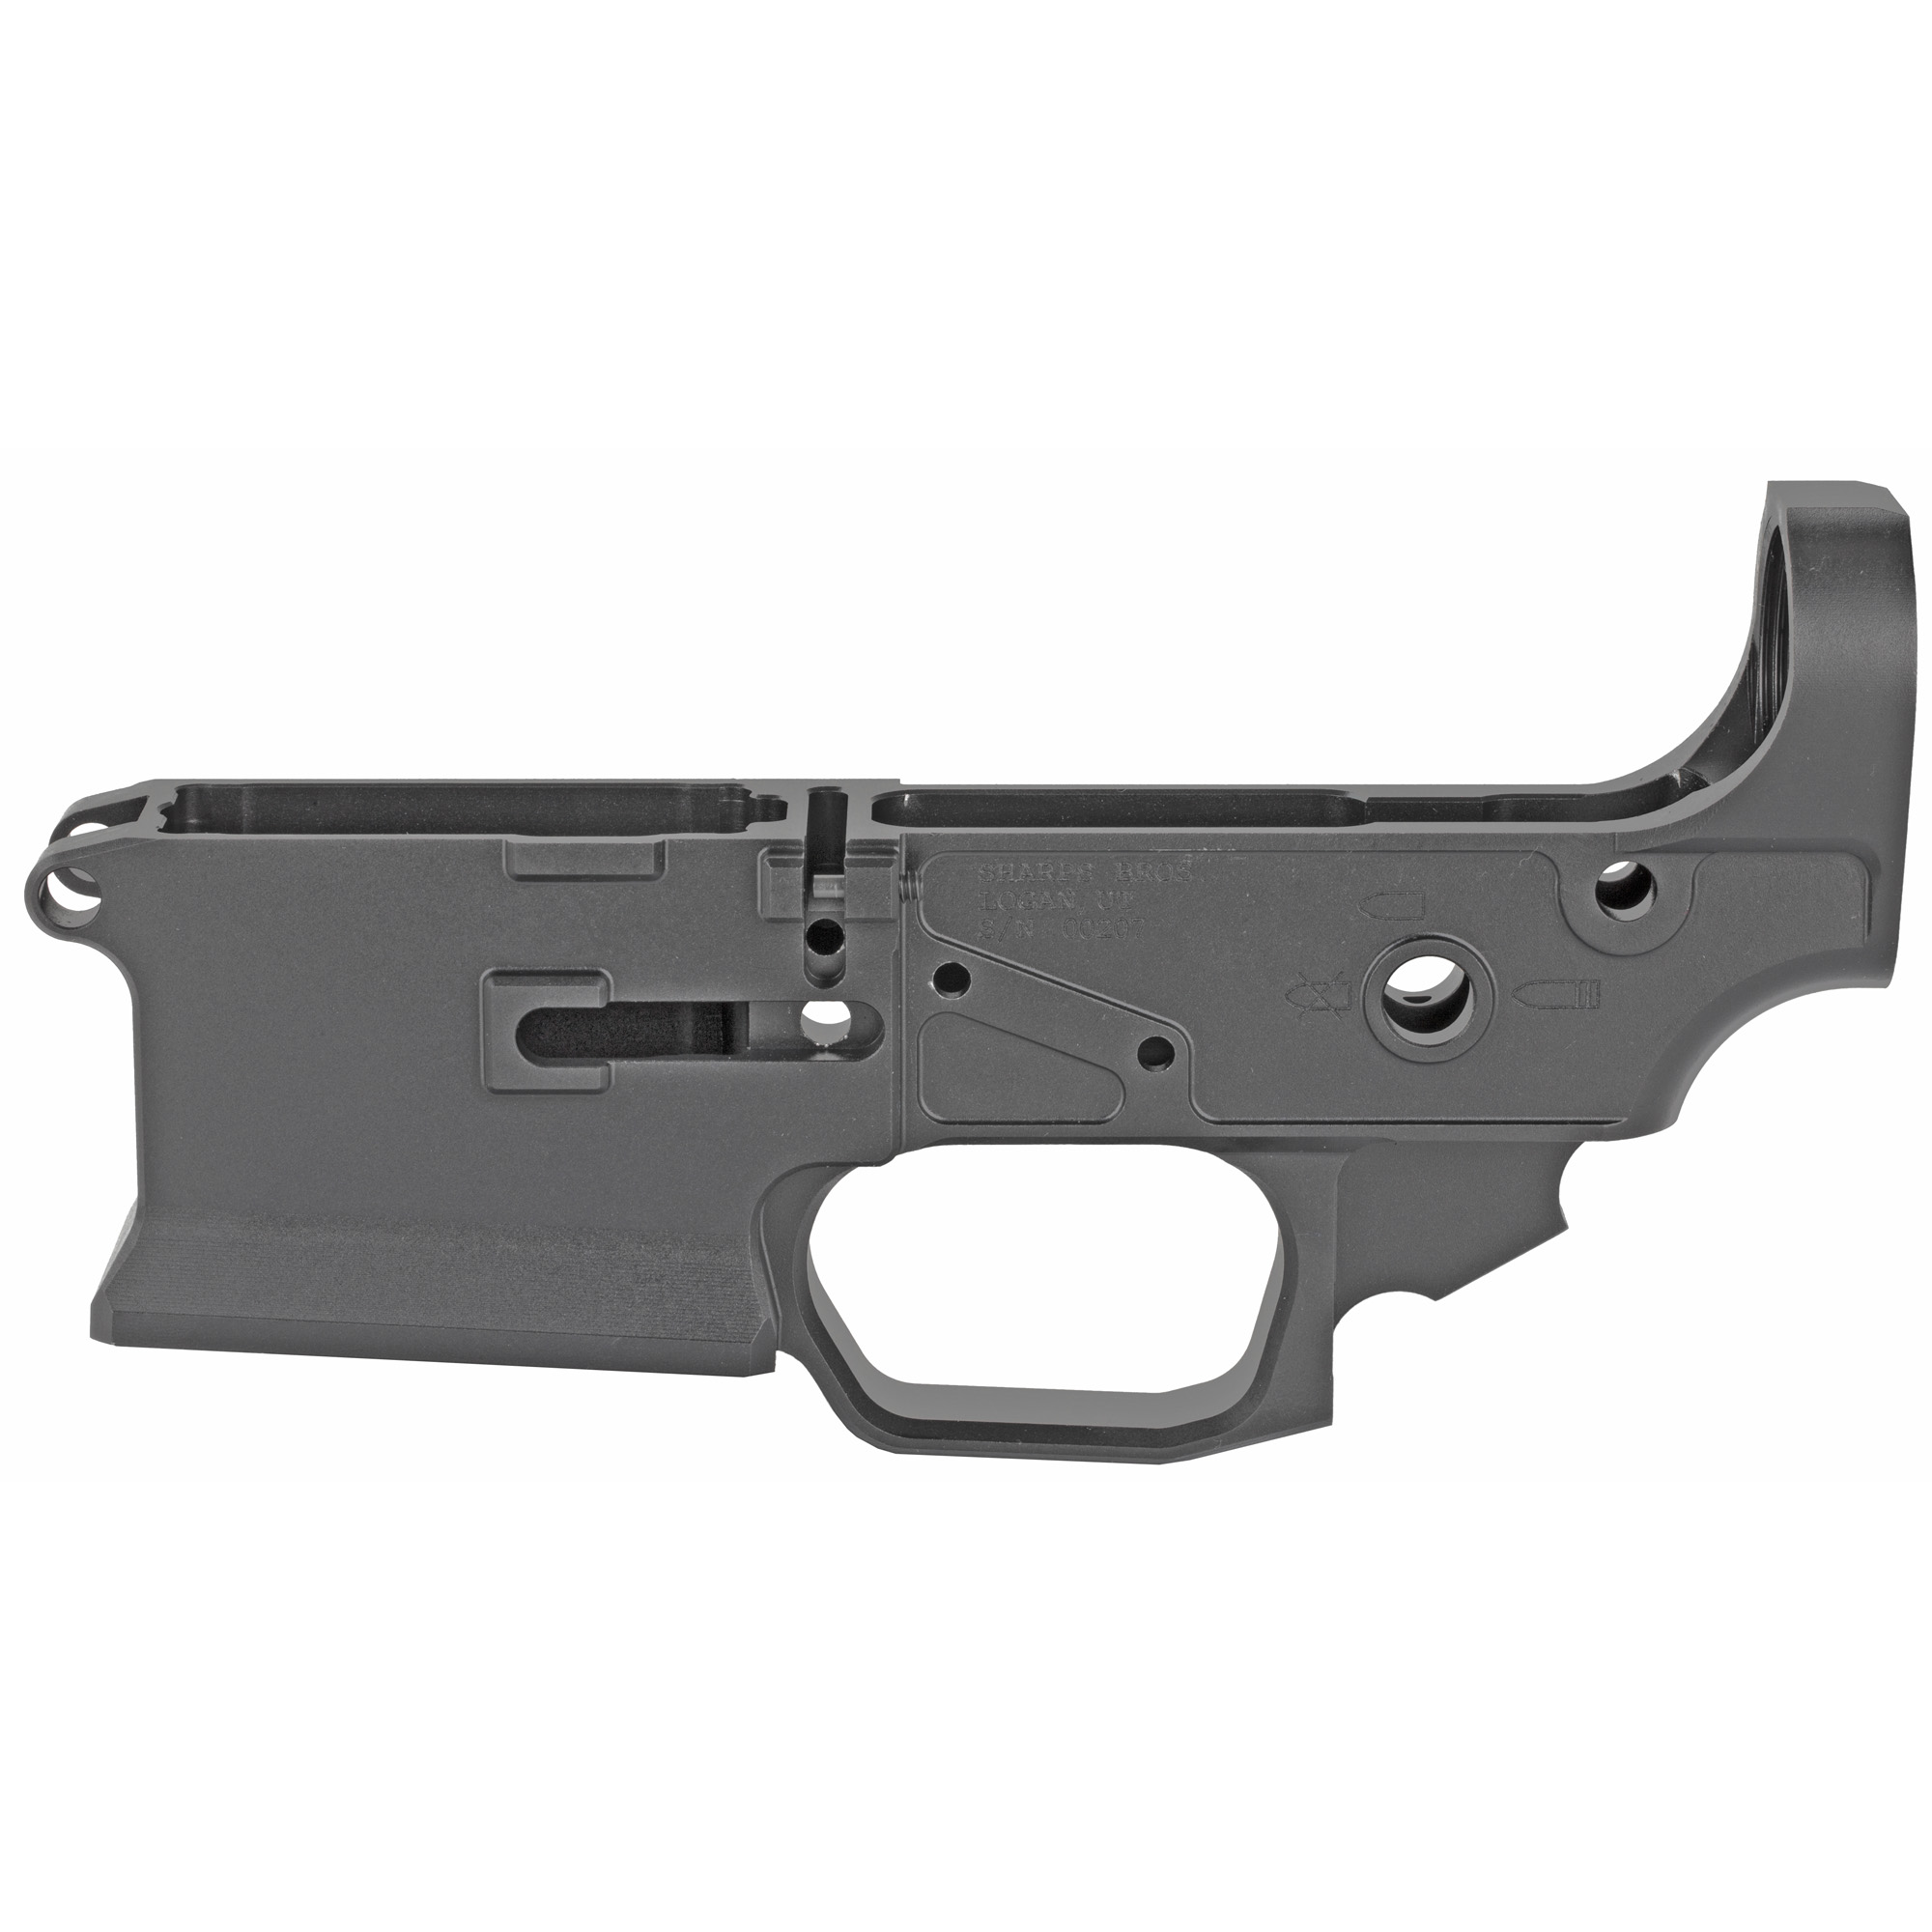 """The Livewire is a more traditional style AR15 receiver"""" but still unlike anything else out there with looks all its own. It has a heavily flared mag well"""" stepped transition between trigger guard and mag well"""" and clean lines."""